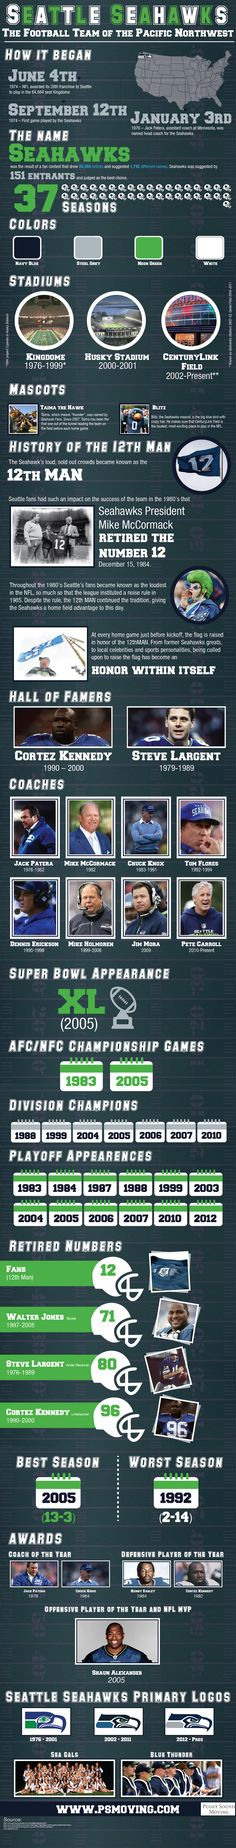 A visual representation of the history and facts of the Seattle Seahawks, the Football Team of the Pacific Northwest.